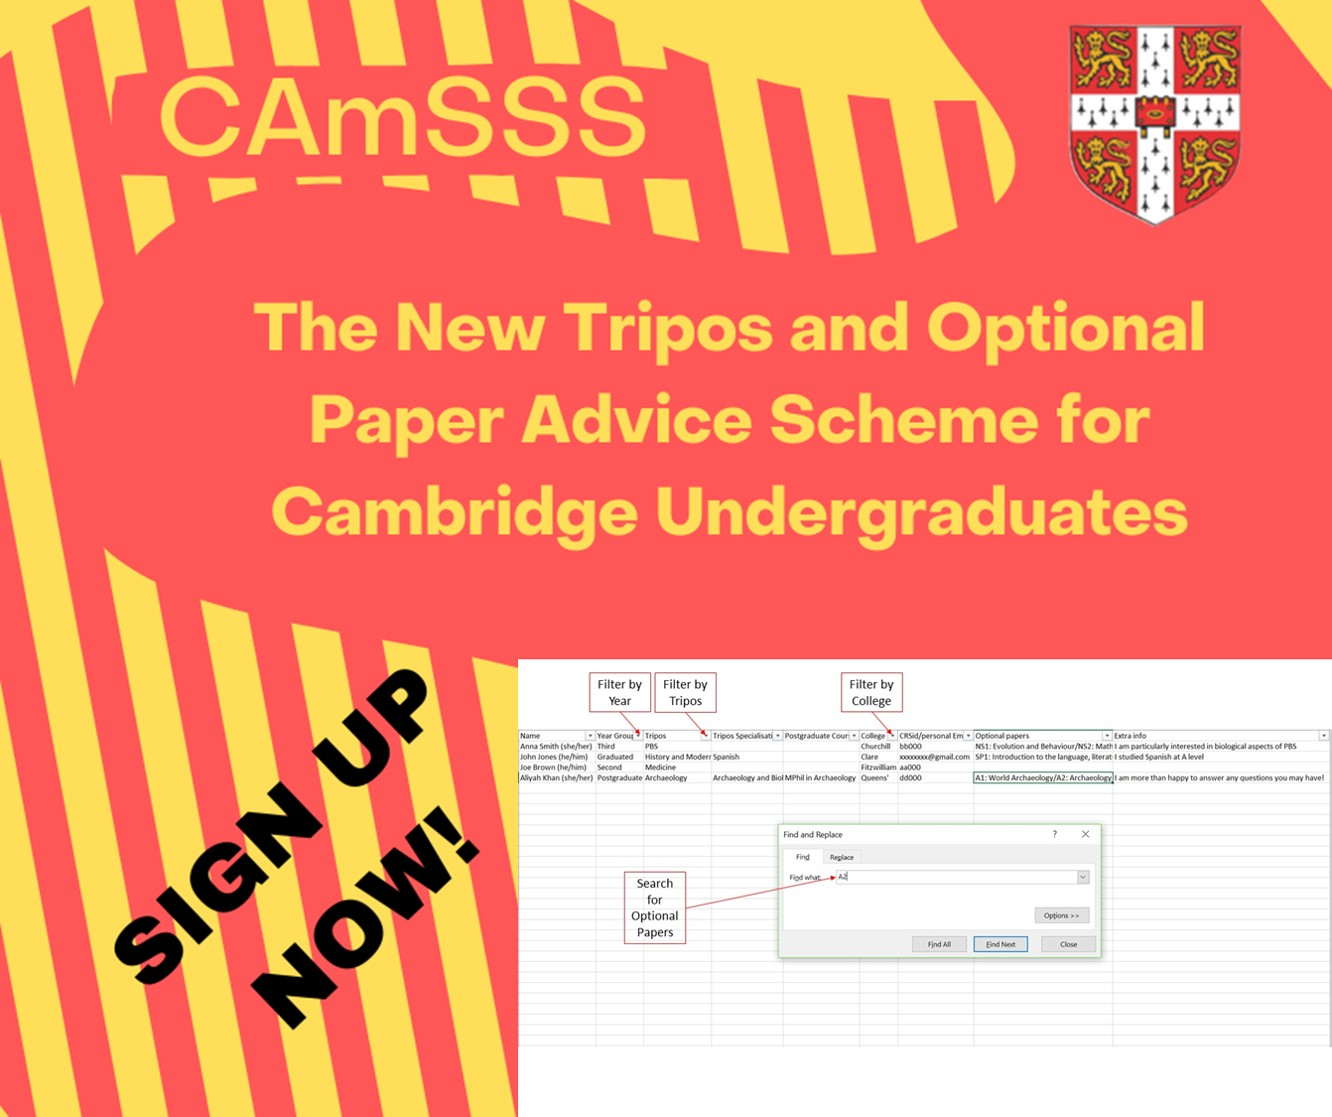 Infrographic encouragin students to sign up for CAmSSS